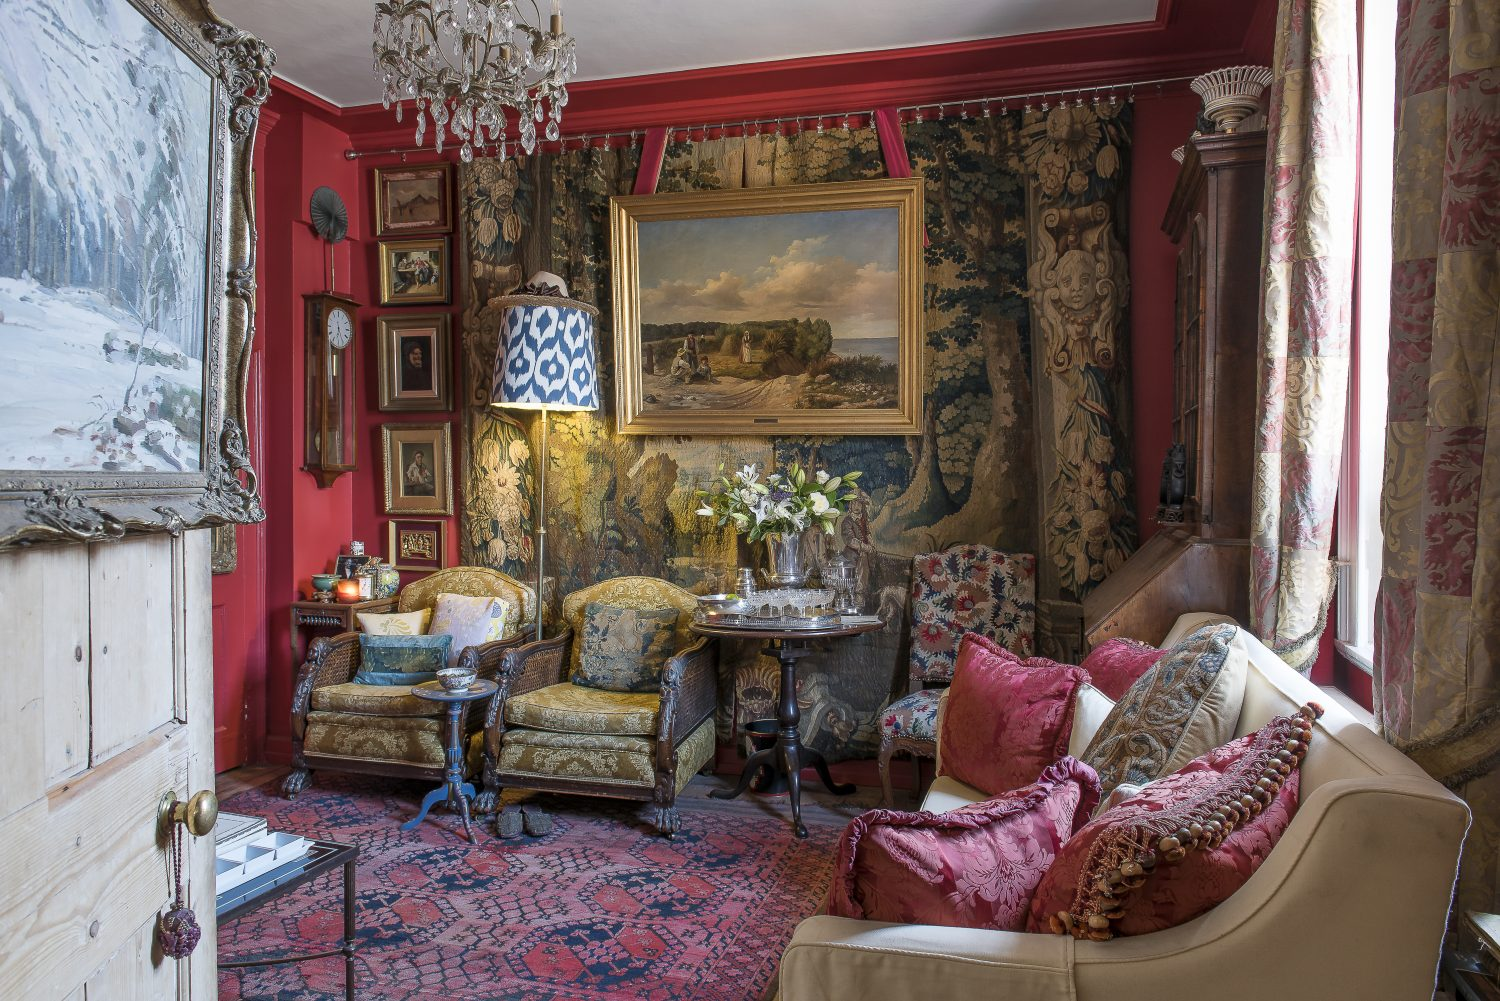 The tapestry on the facing wall of the sitting room is dated to around 1580. Will found the early 20th century Fortuny curtains in an auction. A painting hangs on the back of the door